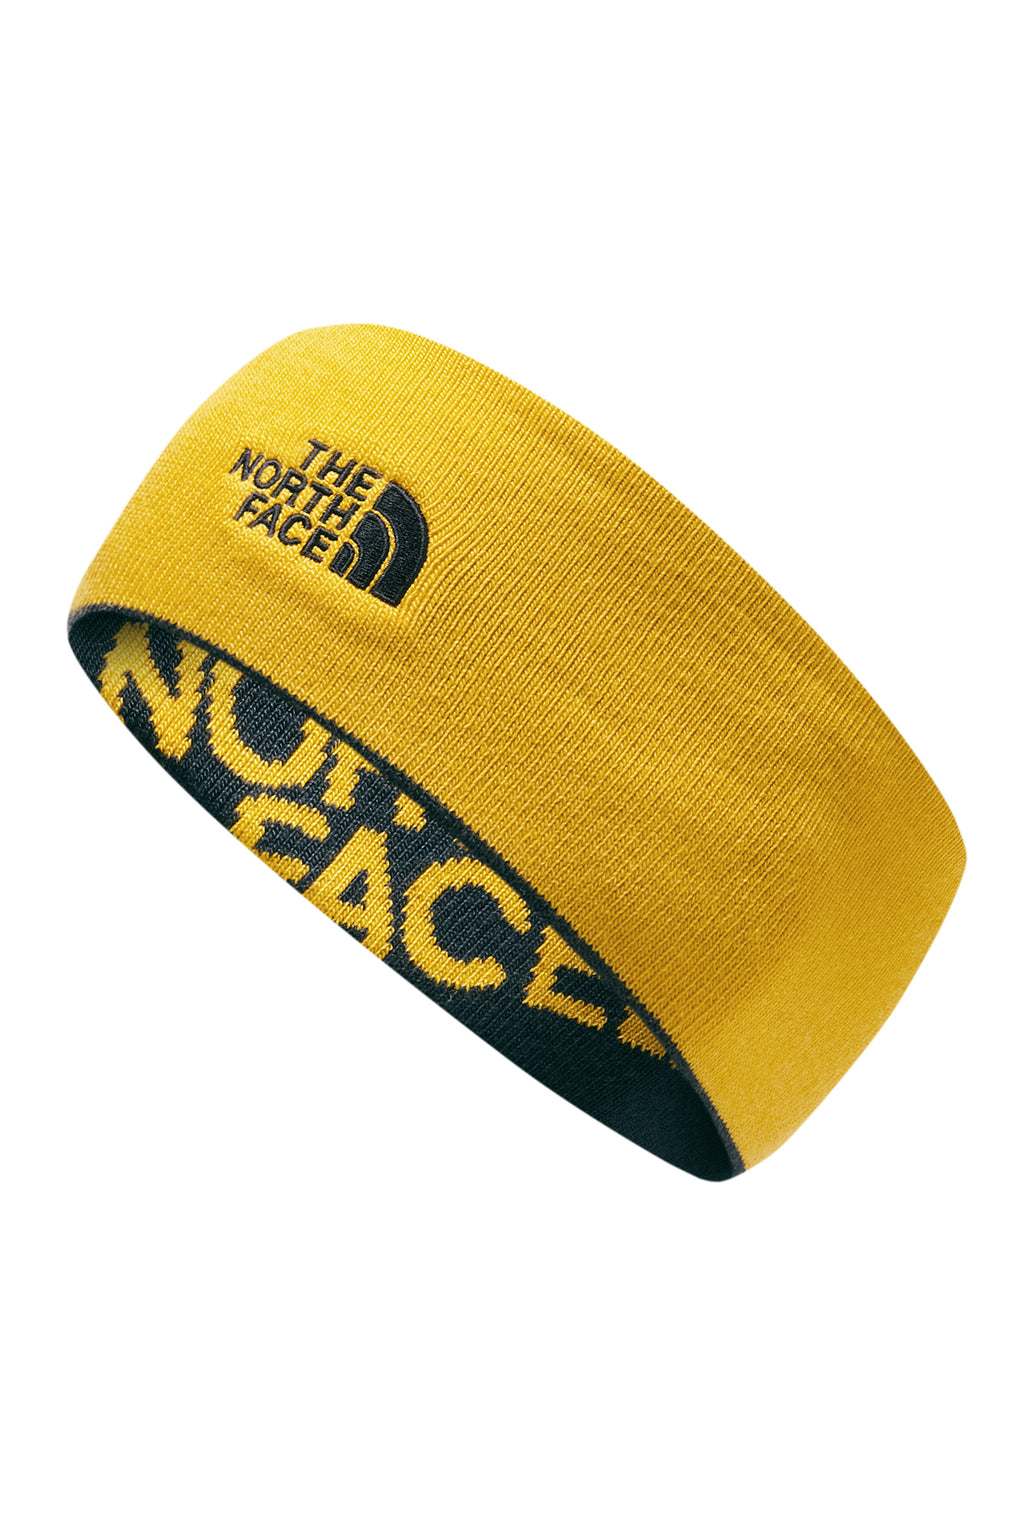 THE NORTH FACE MENS CHIZZLER HEADBAND